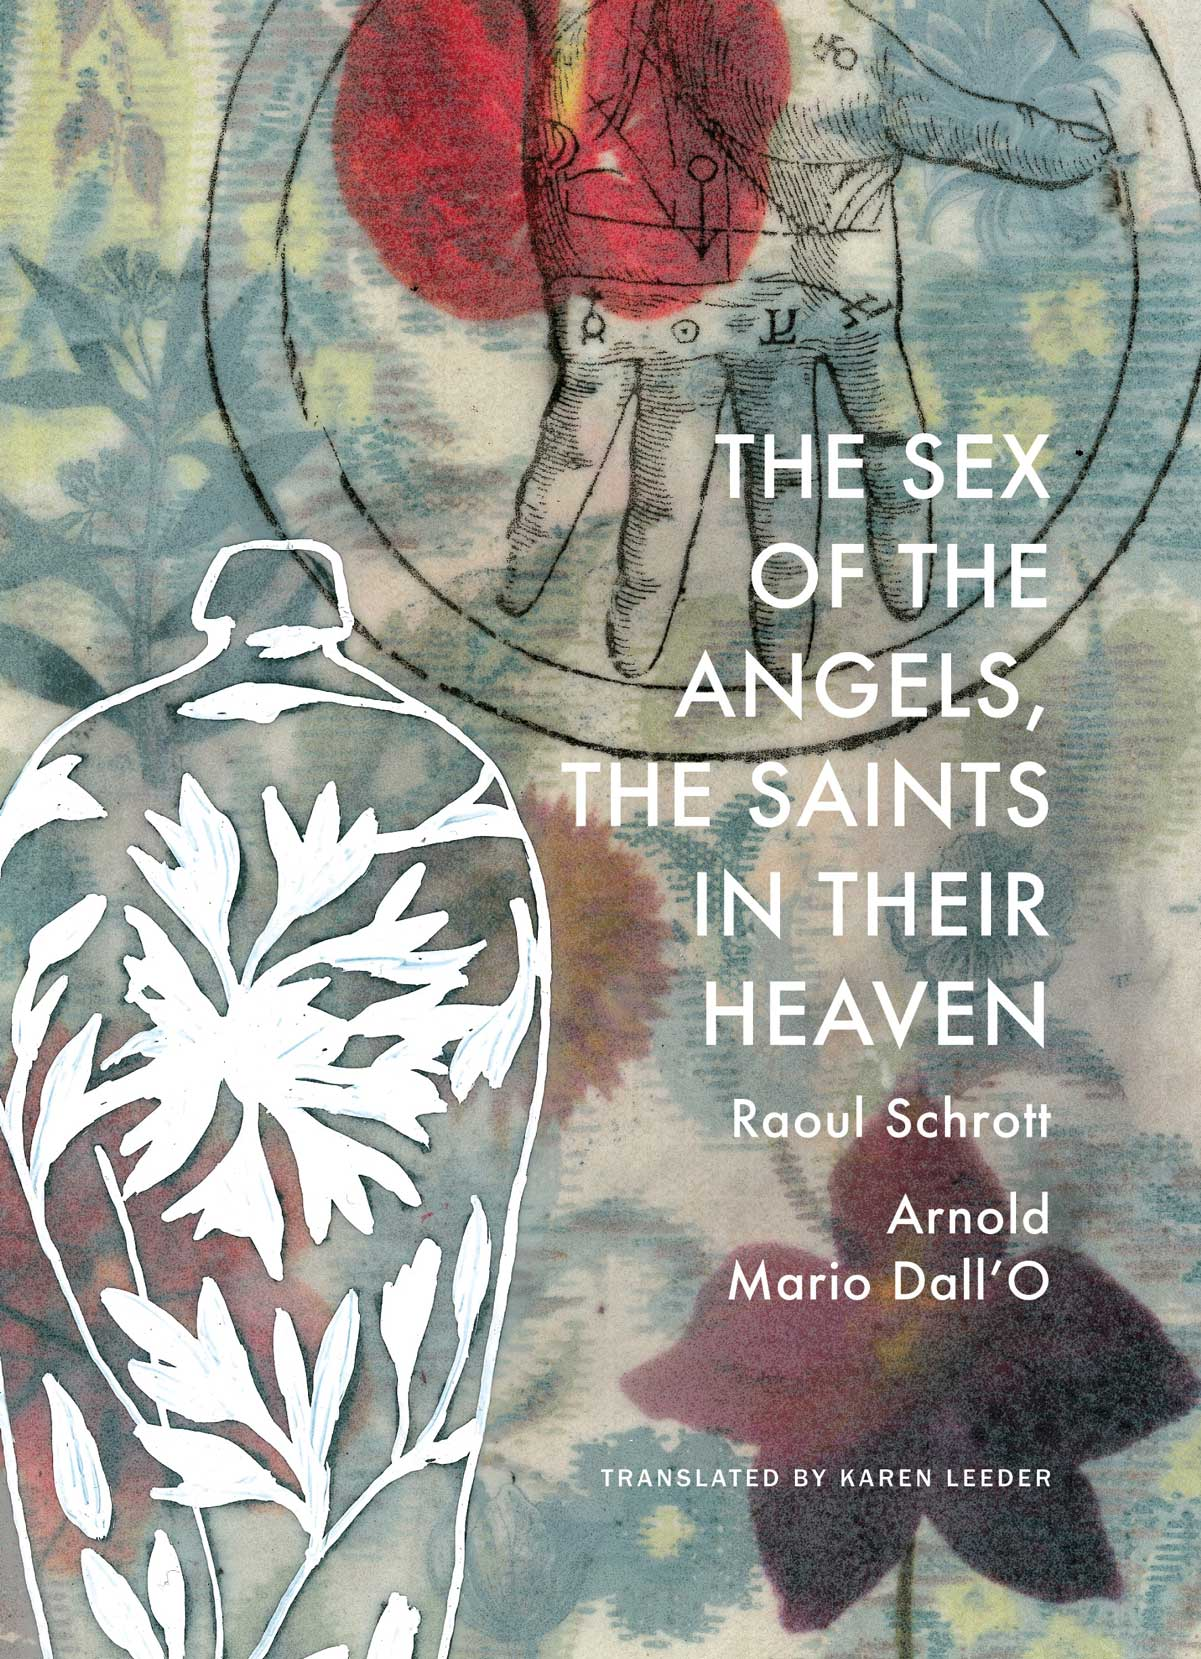 The Sex of the Angels, the Saints in their Heaven :  A Breviary by Raoul Schrott | Seagull Books